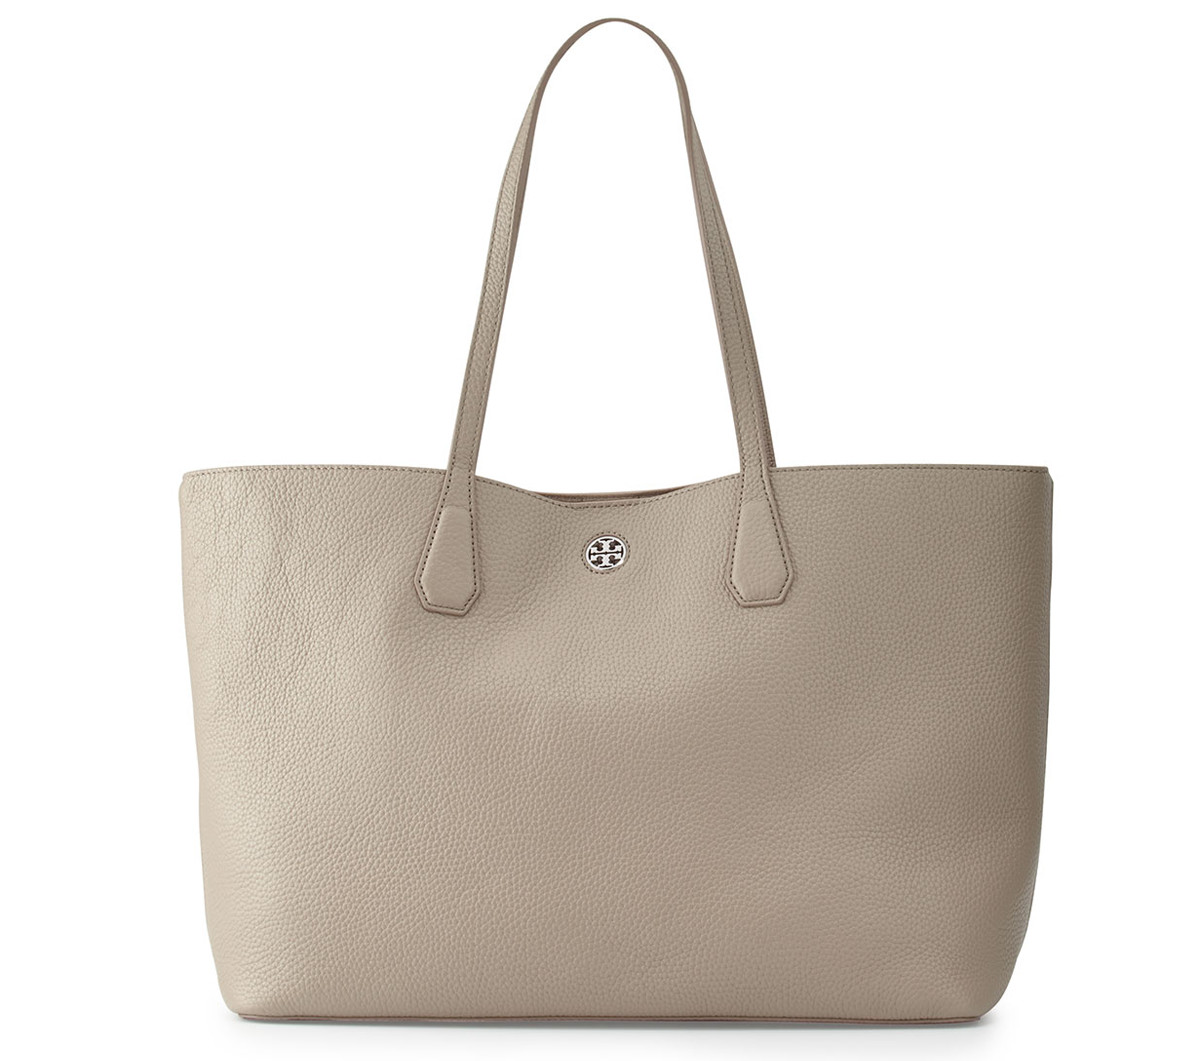 the tory burch perry tote is a great everyday bag purseblog